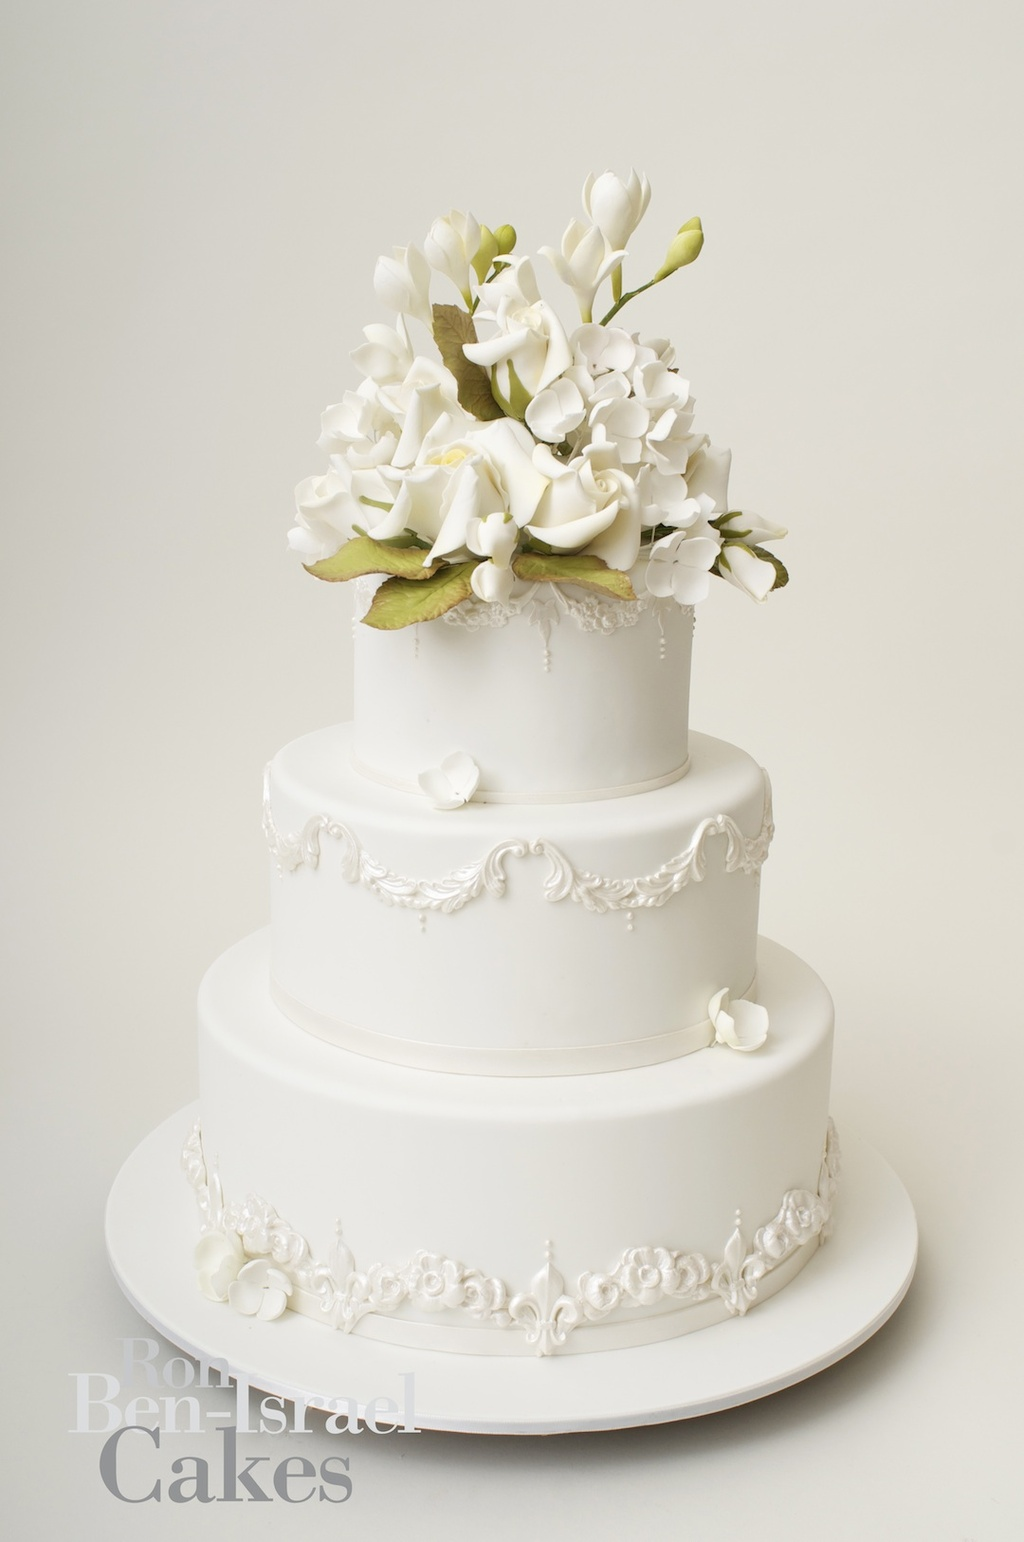 Wedding-cake-inspiration-ron-ben-isreal-wedding-cakes-classic-white-3-tier.full